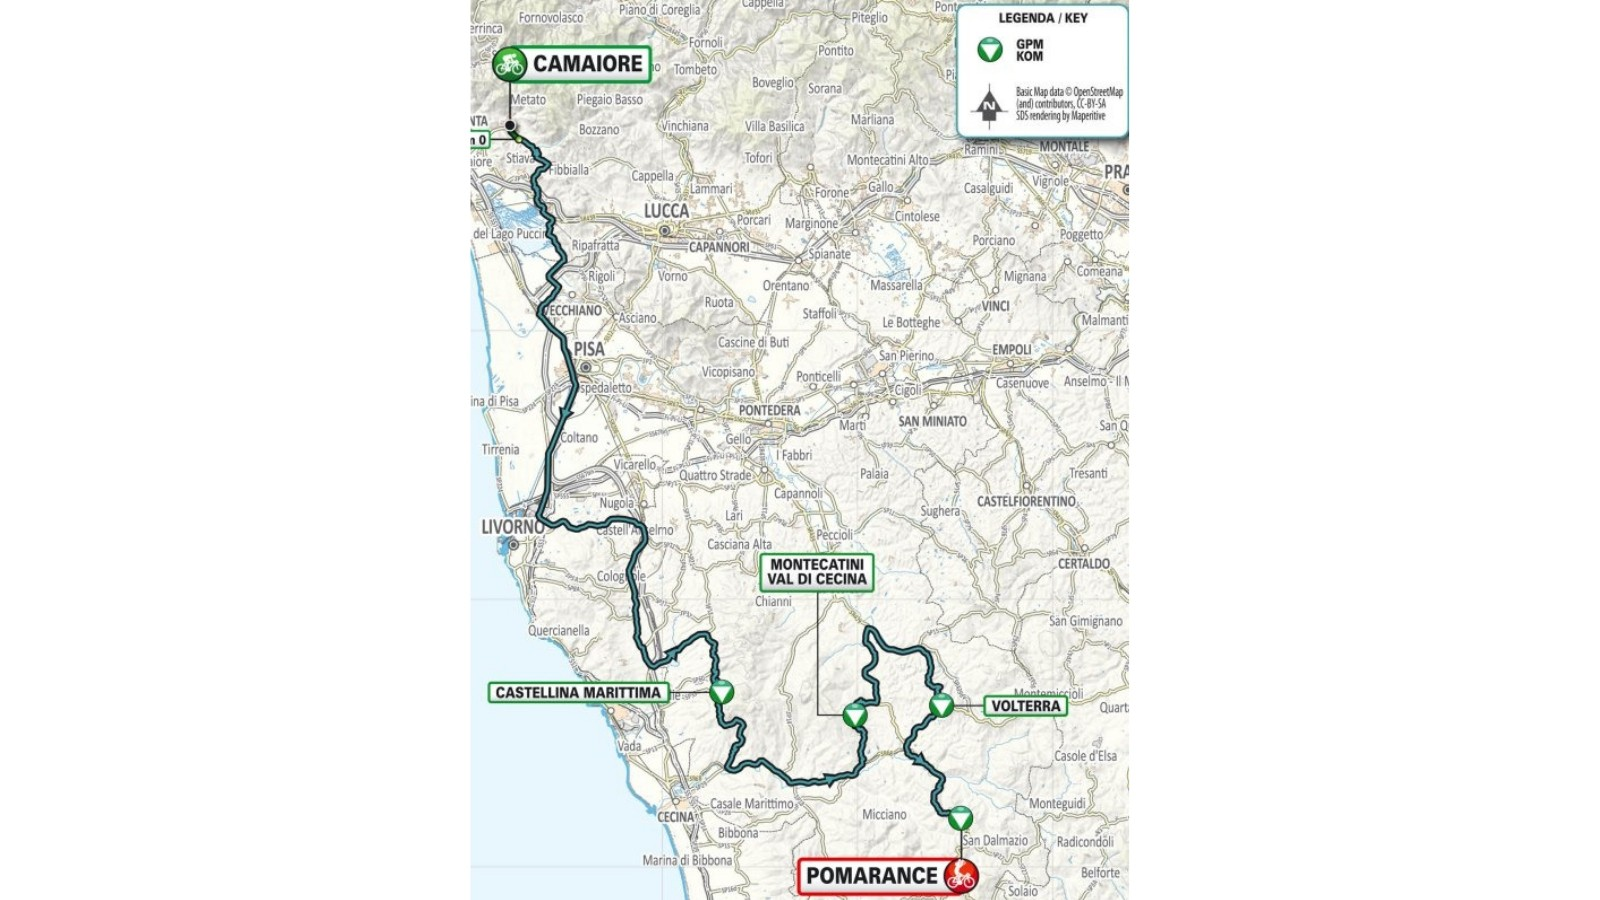 Stage 2 is a 189km race to Pomarance